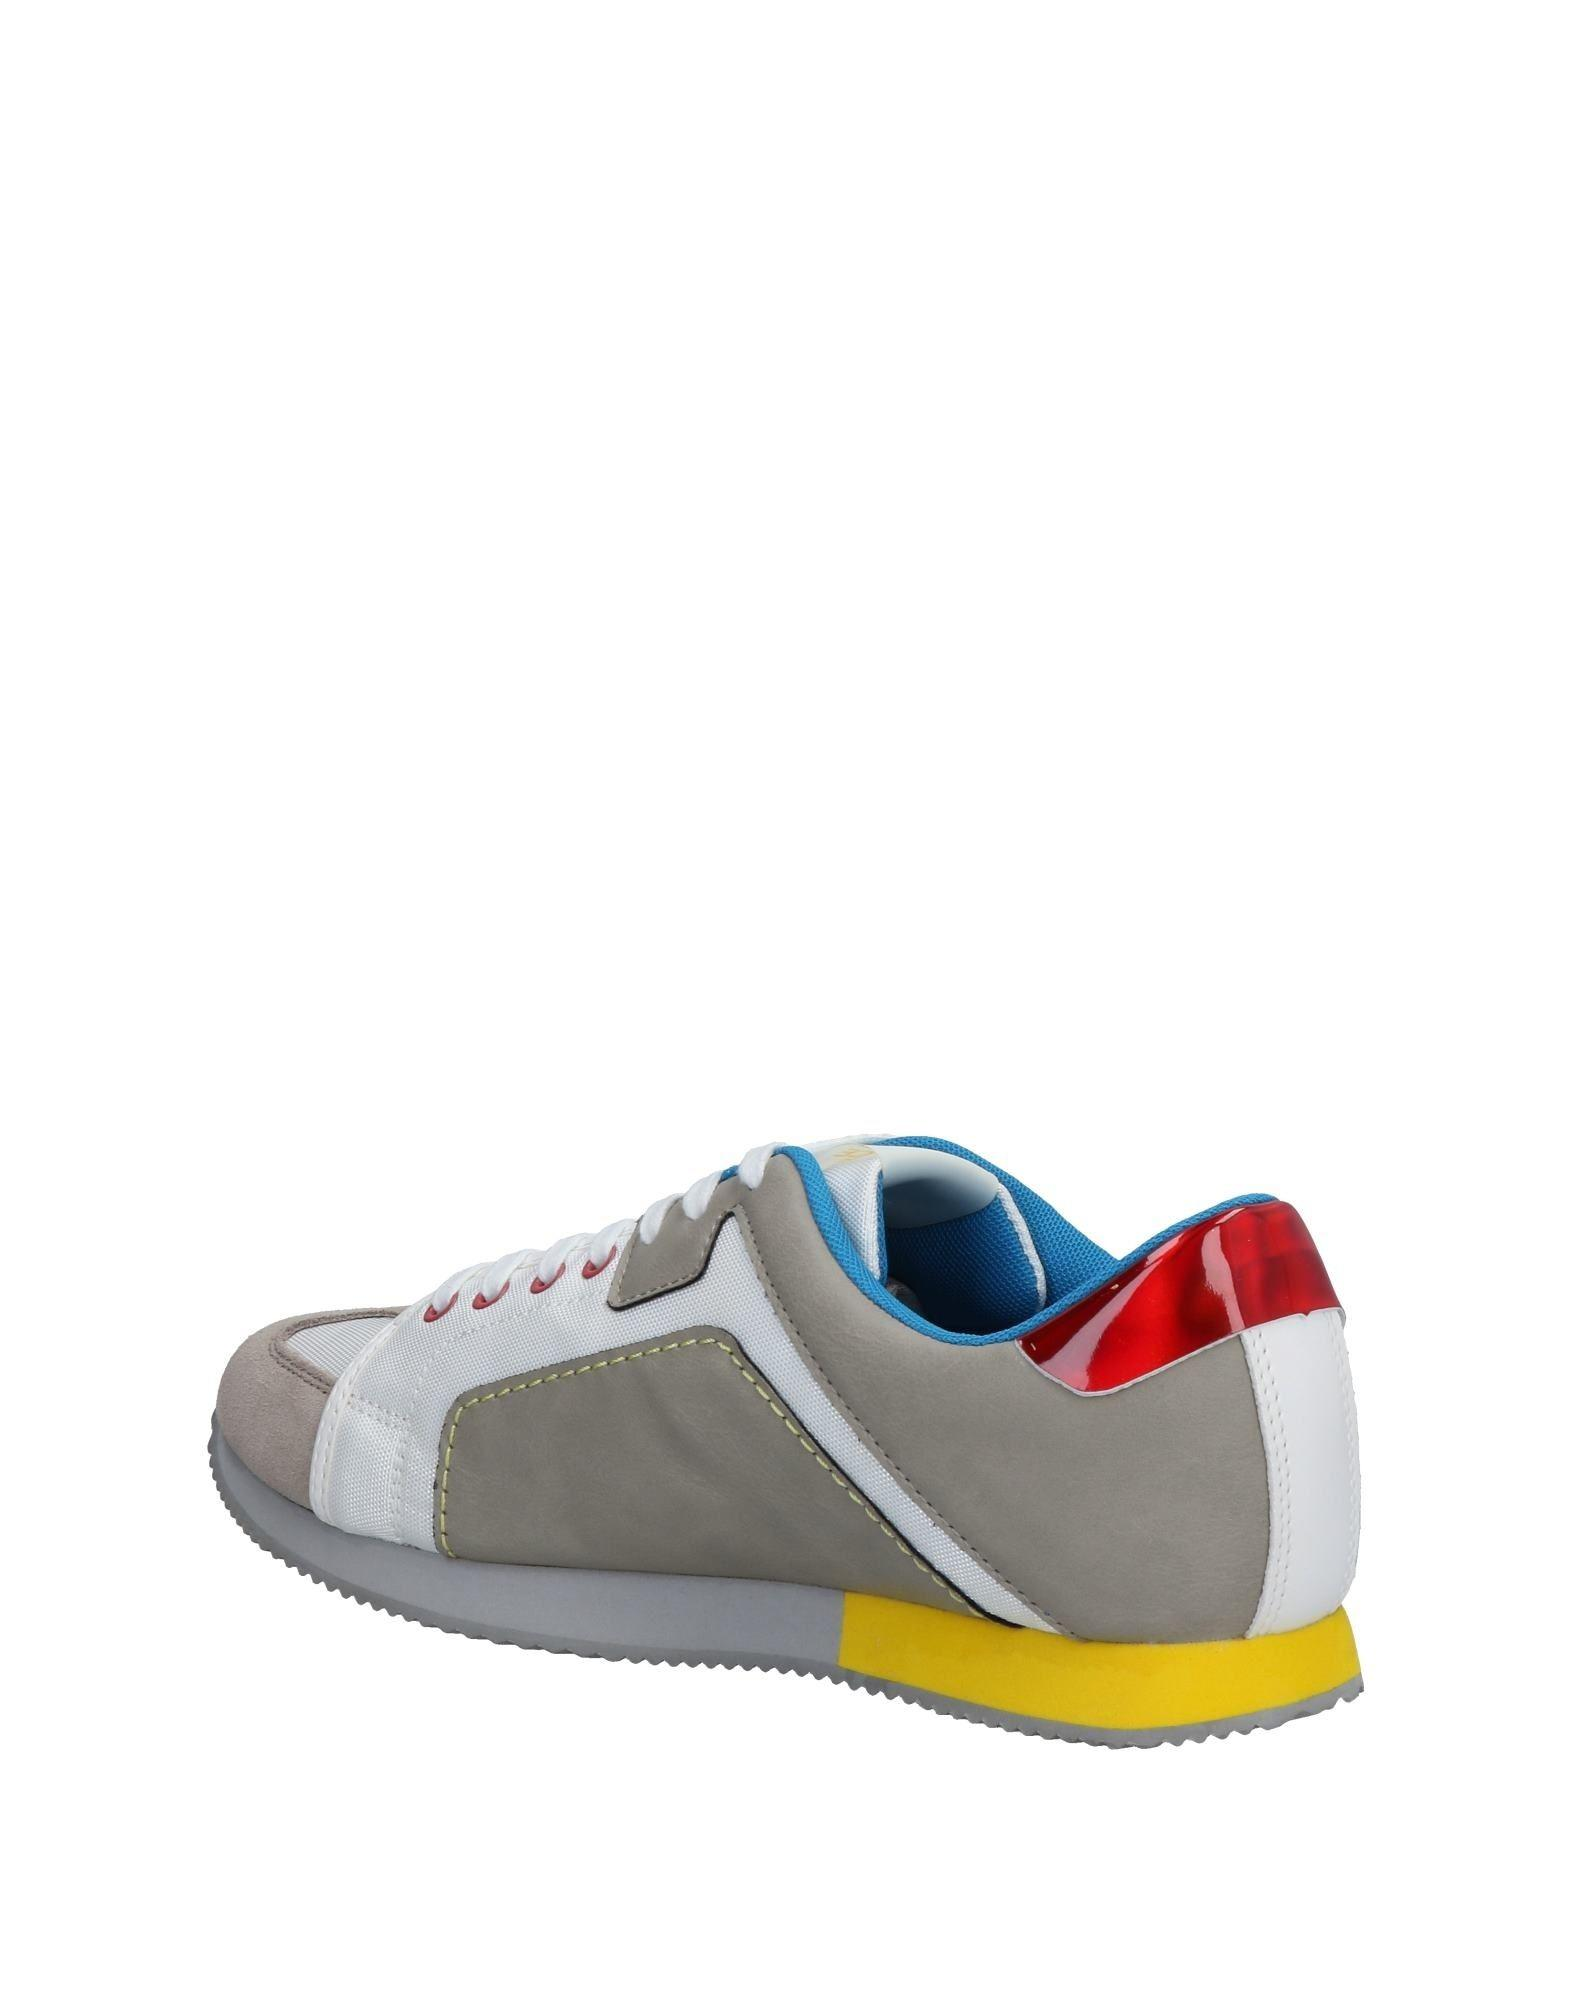 Versace Jeans Couture Leather Low-tops & Sneakers in Grey